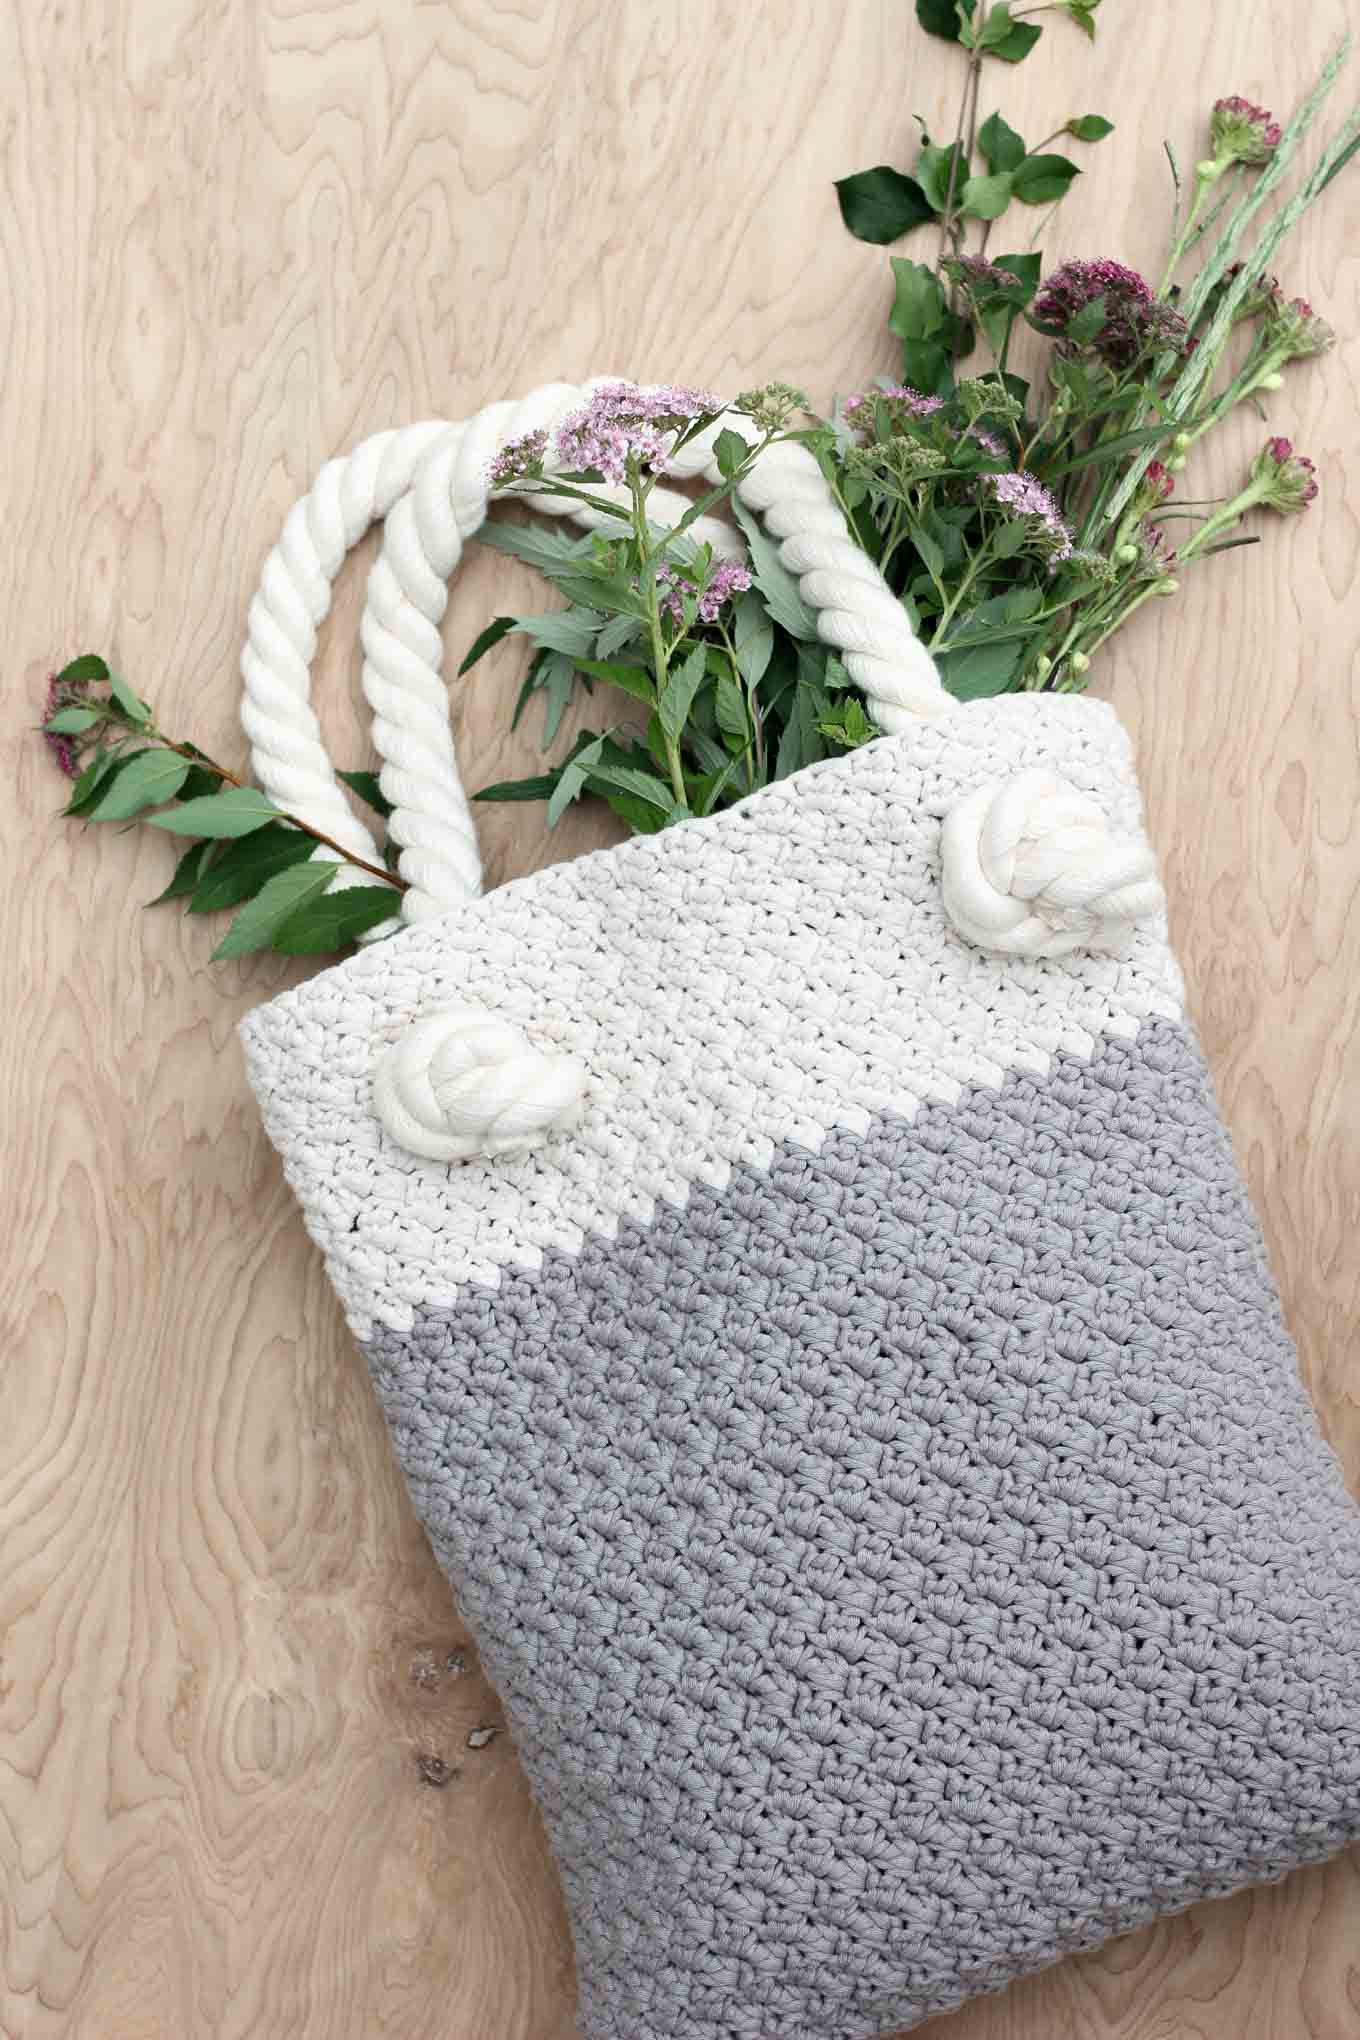 Basic Beginner Crochet Patterns : Easy + Modern Free Crochet Bag Pattern for Beginners